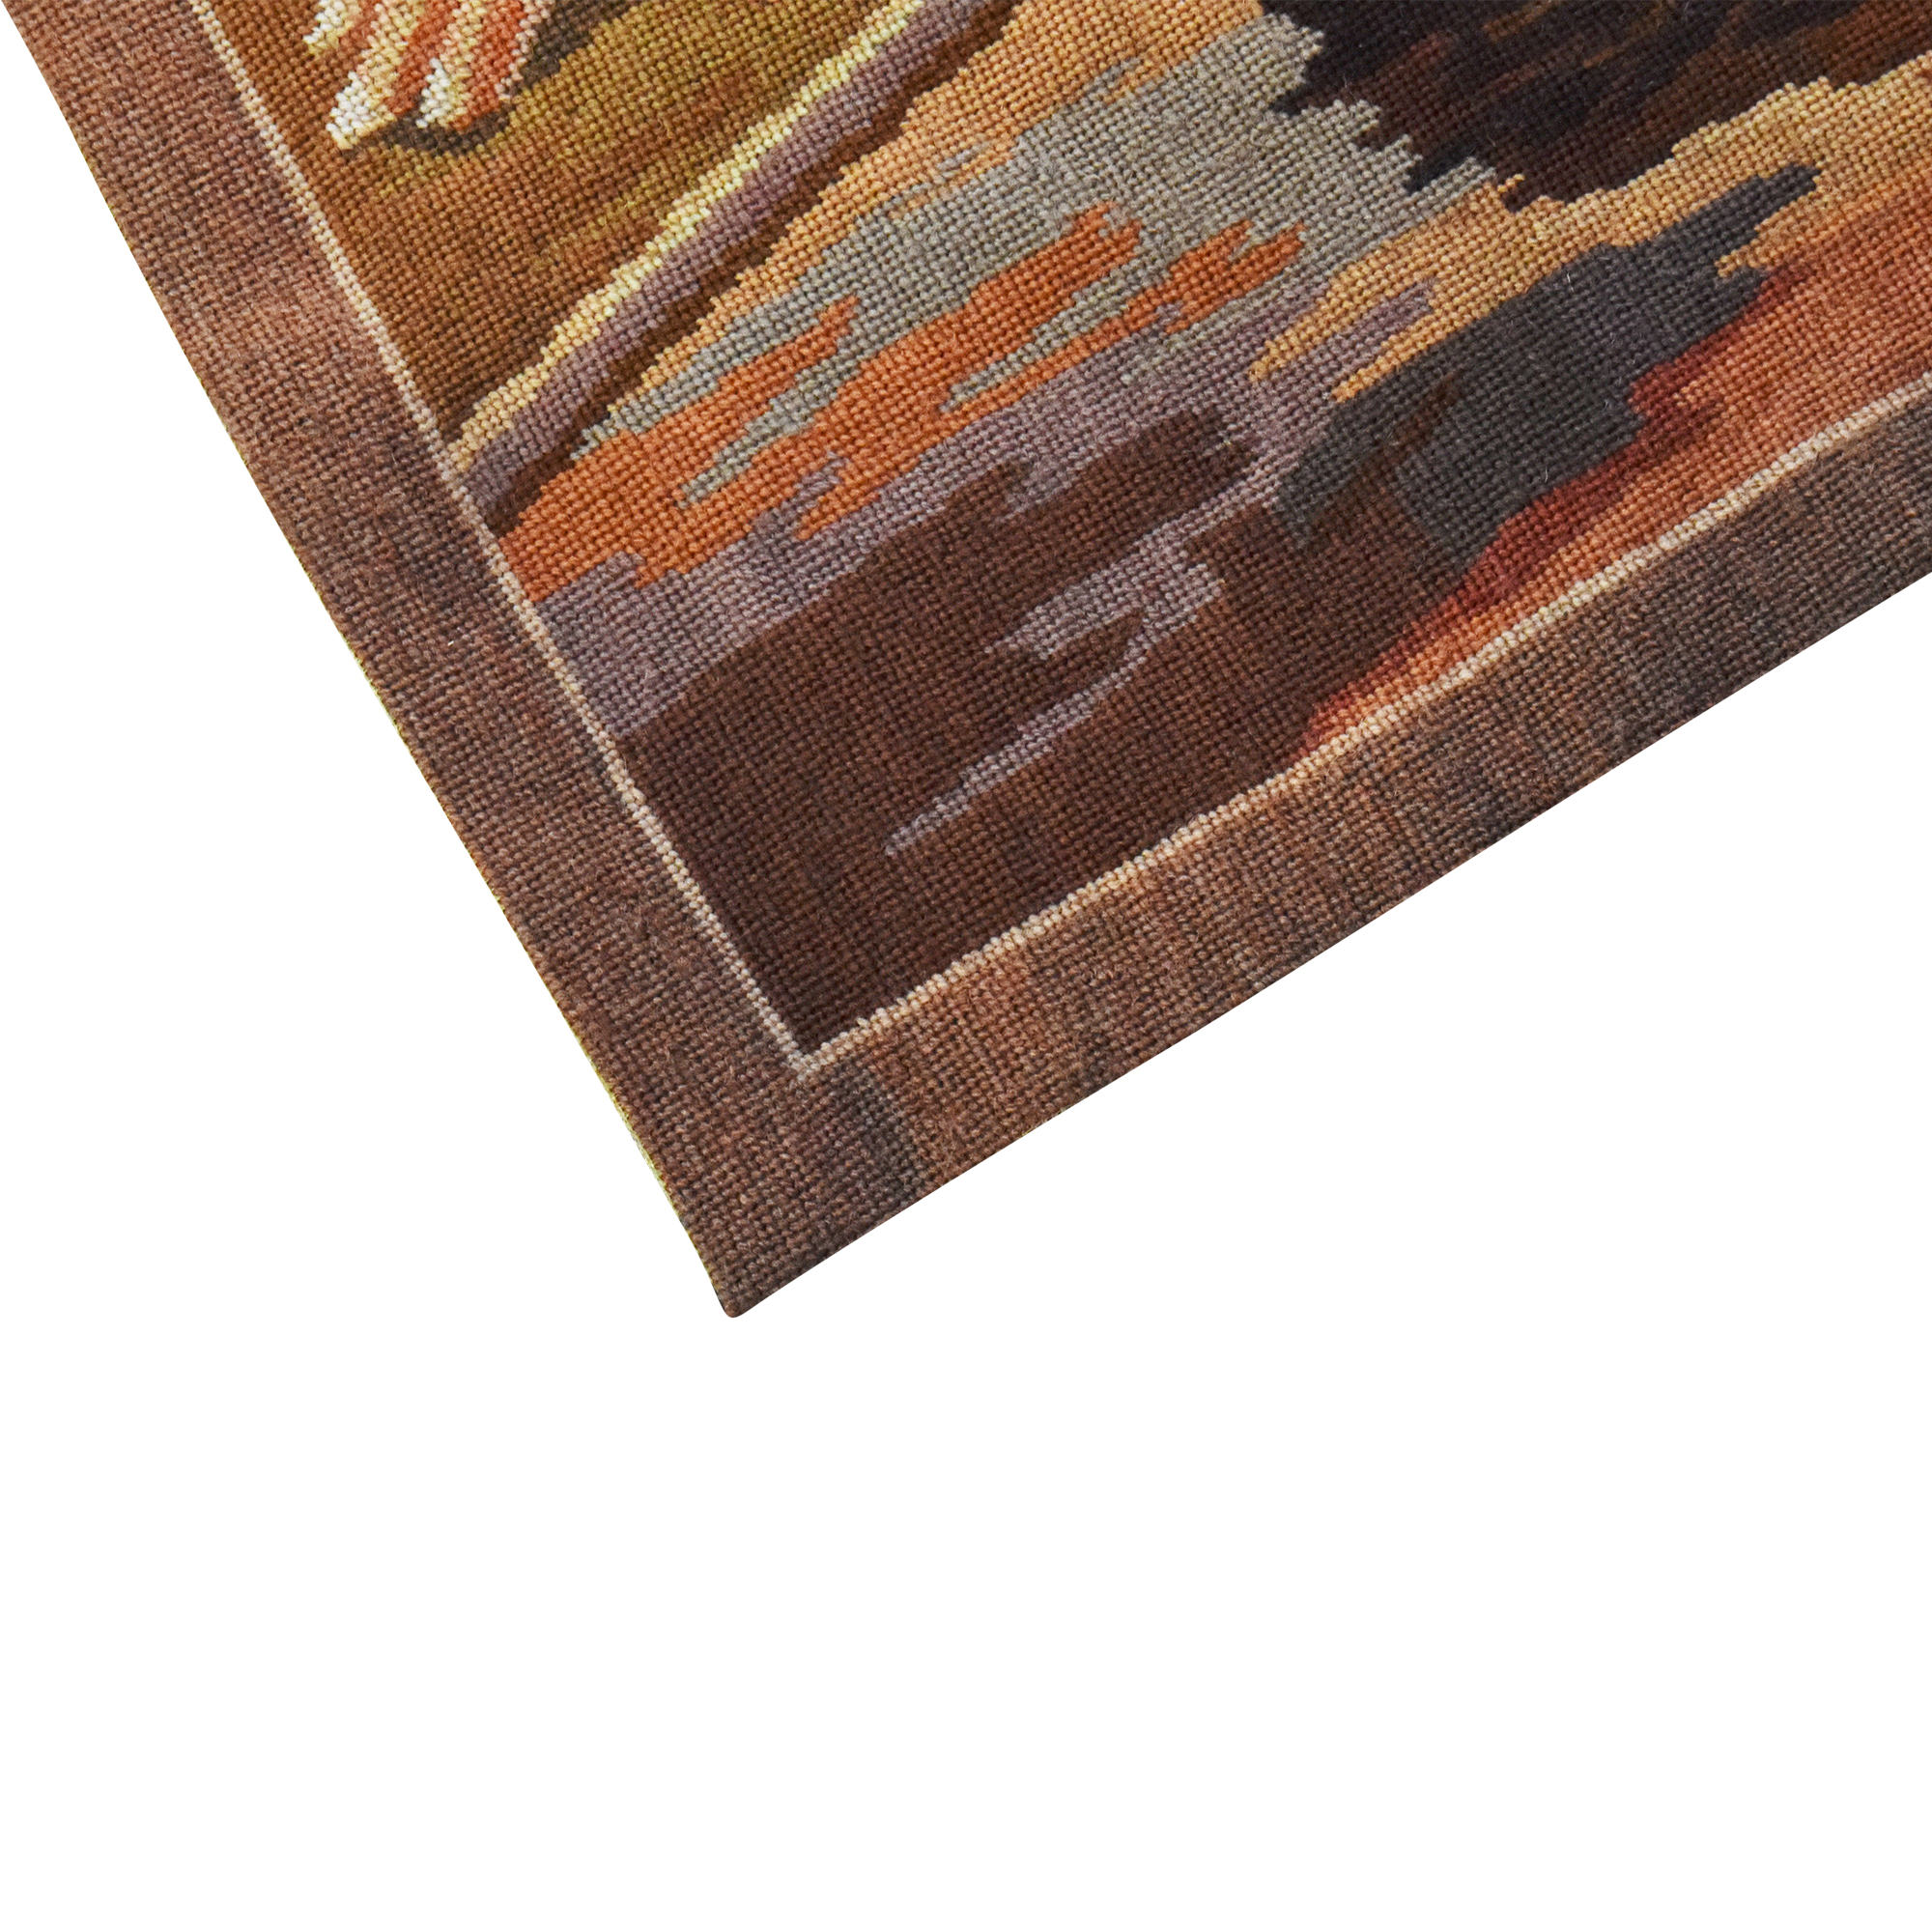 Renaissance-Inspired Tapestry discount